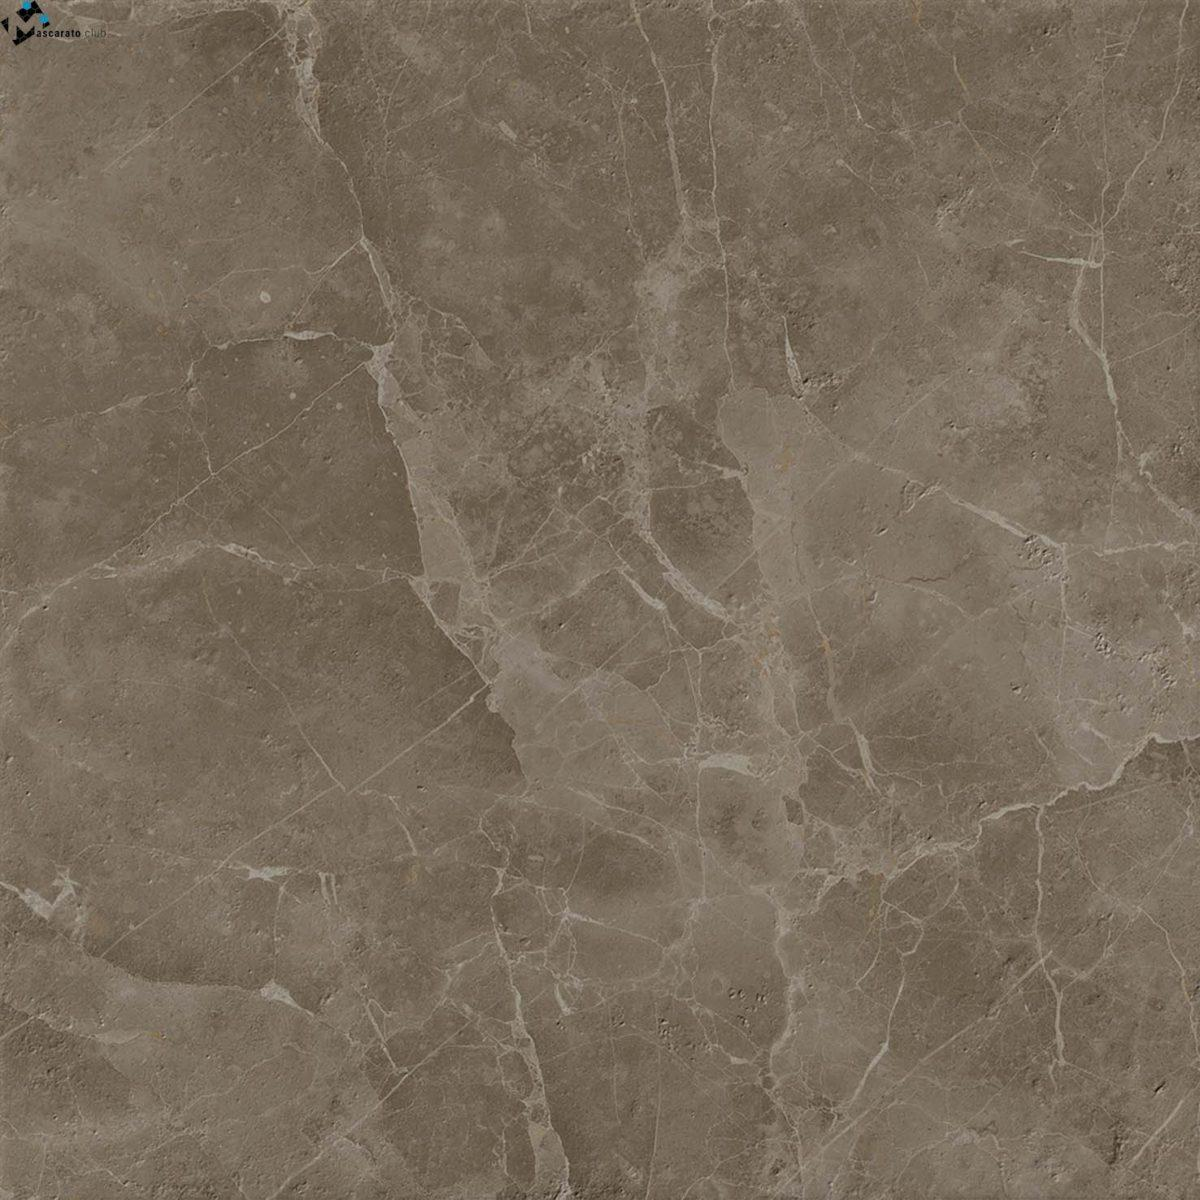 Atlas Concorde Supernova Stone Grey Wax Rett 60x60